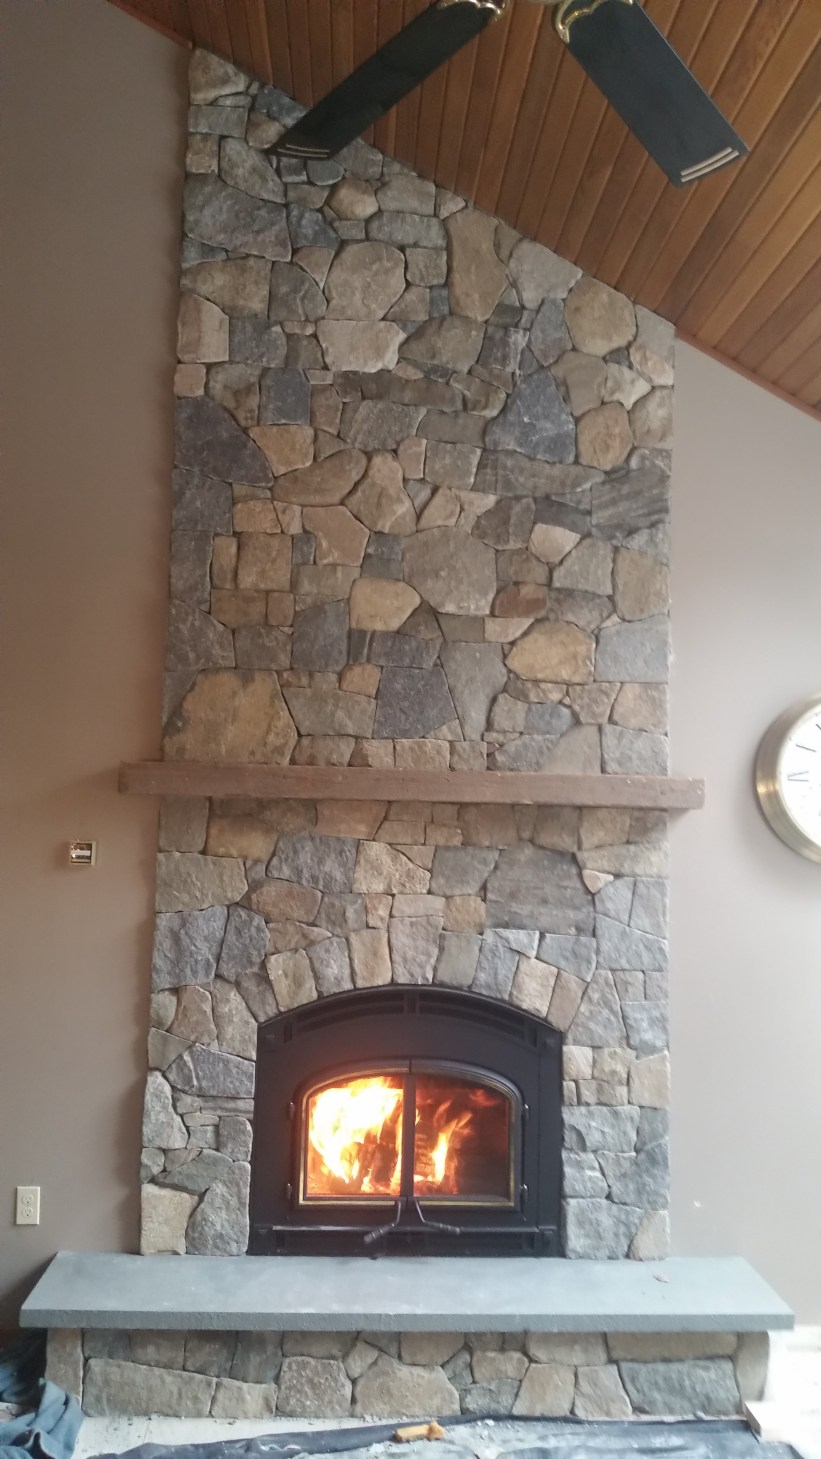 High efficiency wood burning fireplace with natural stone